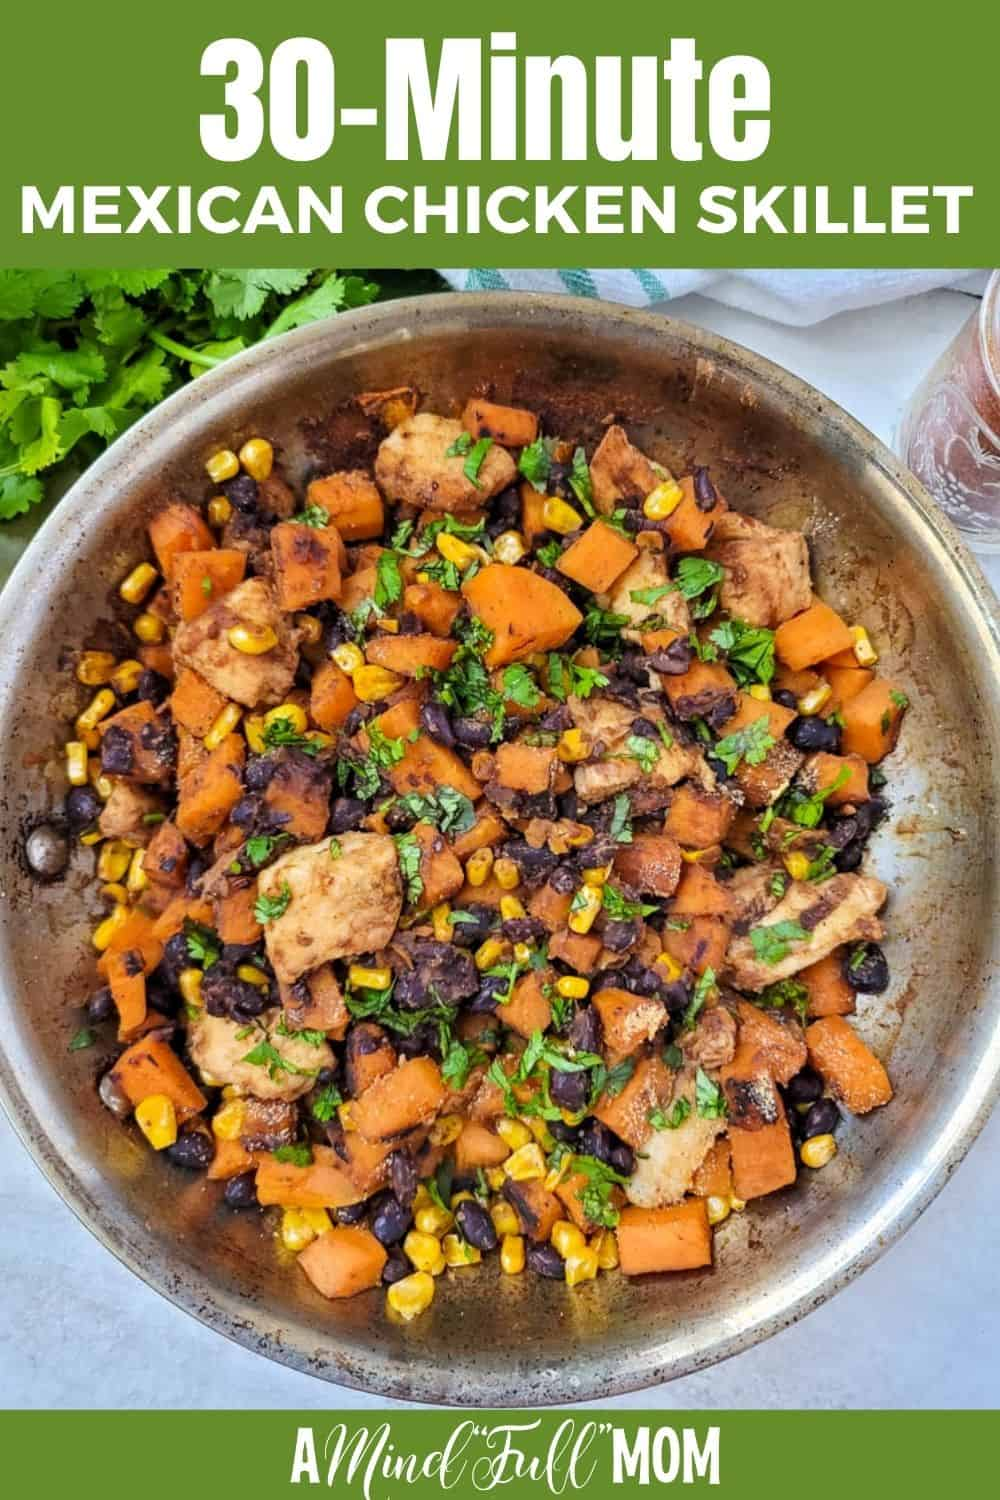 This Mexican Chicken Skillet is an easy 30-minute recipe! Made with only a handful of ingredients, this one-pot chicken and sweet potato recipe is sure to get rave reviews!